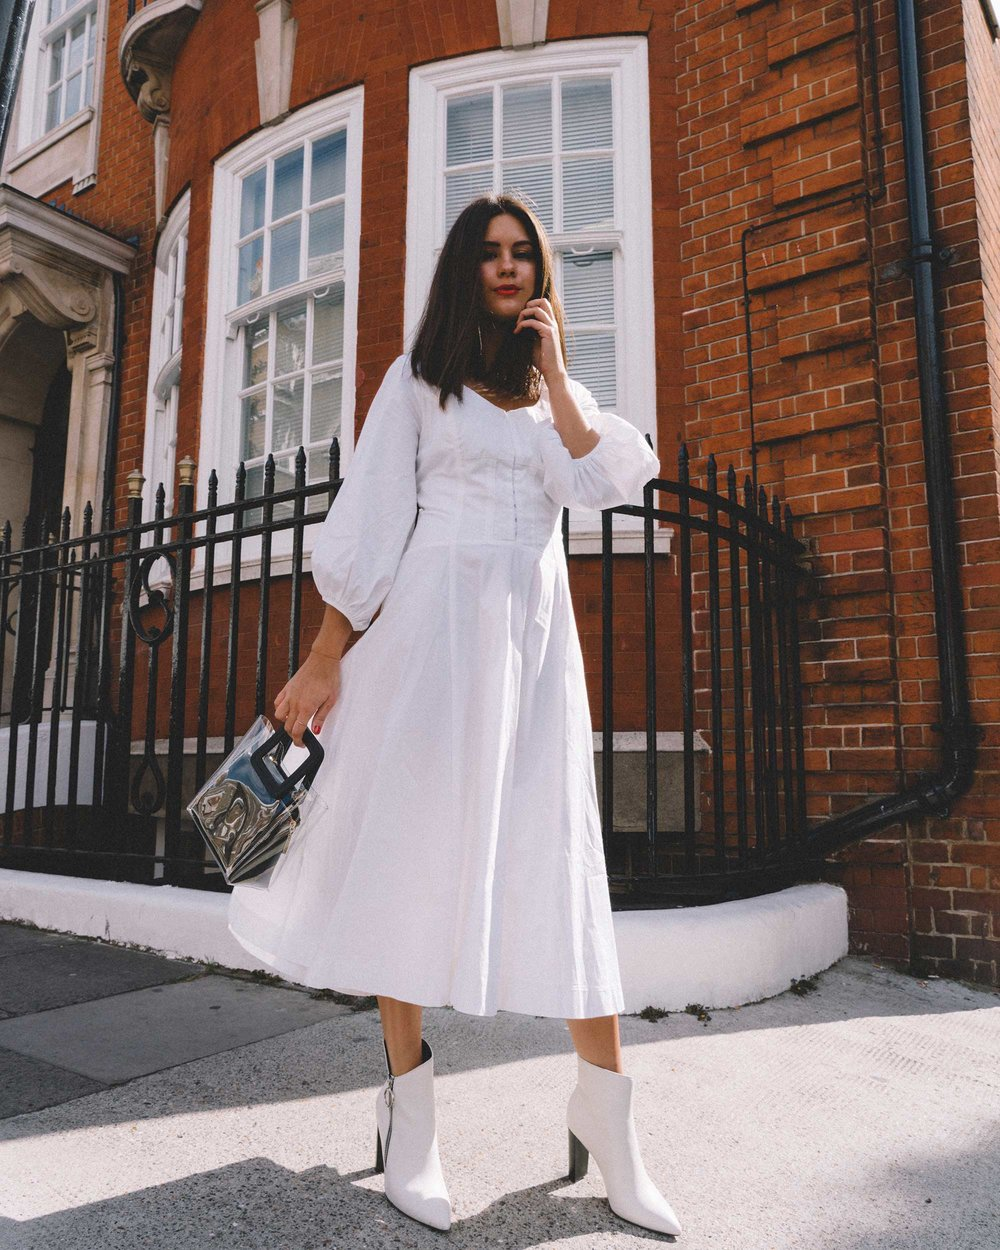 STAUD Eden Midi Dress, STAUD clear and black shirley mini PVC and leather tote, London Fashion Week Outfit17.jpg